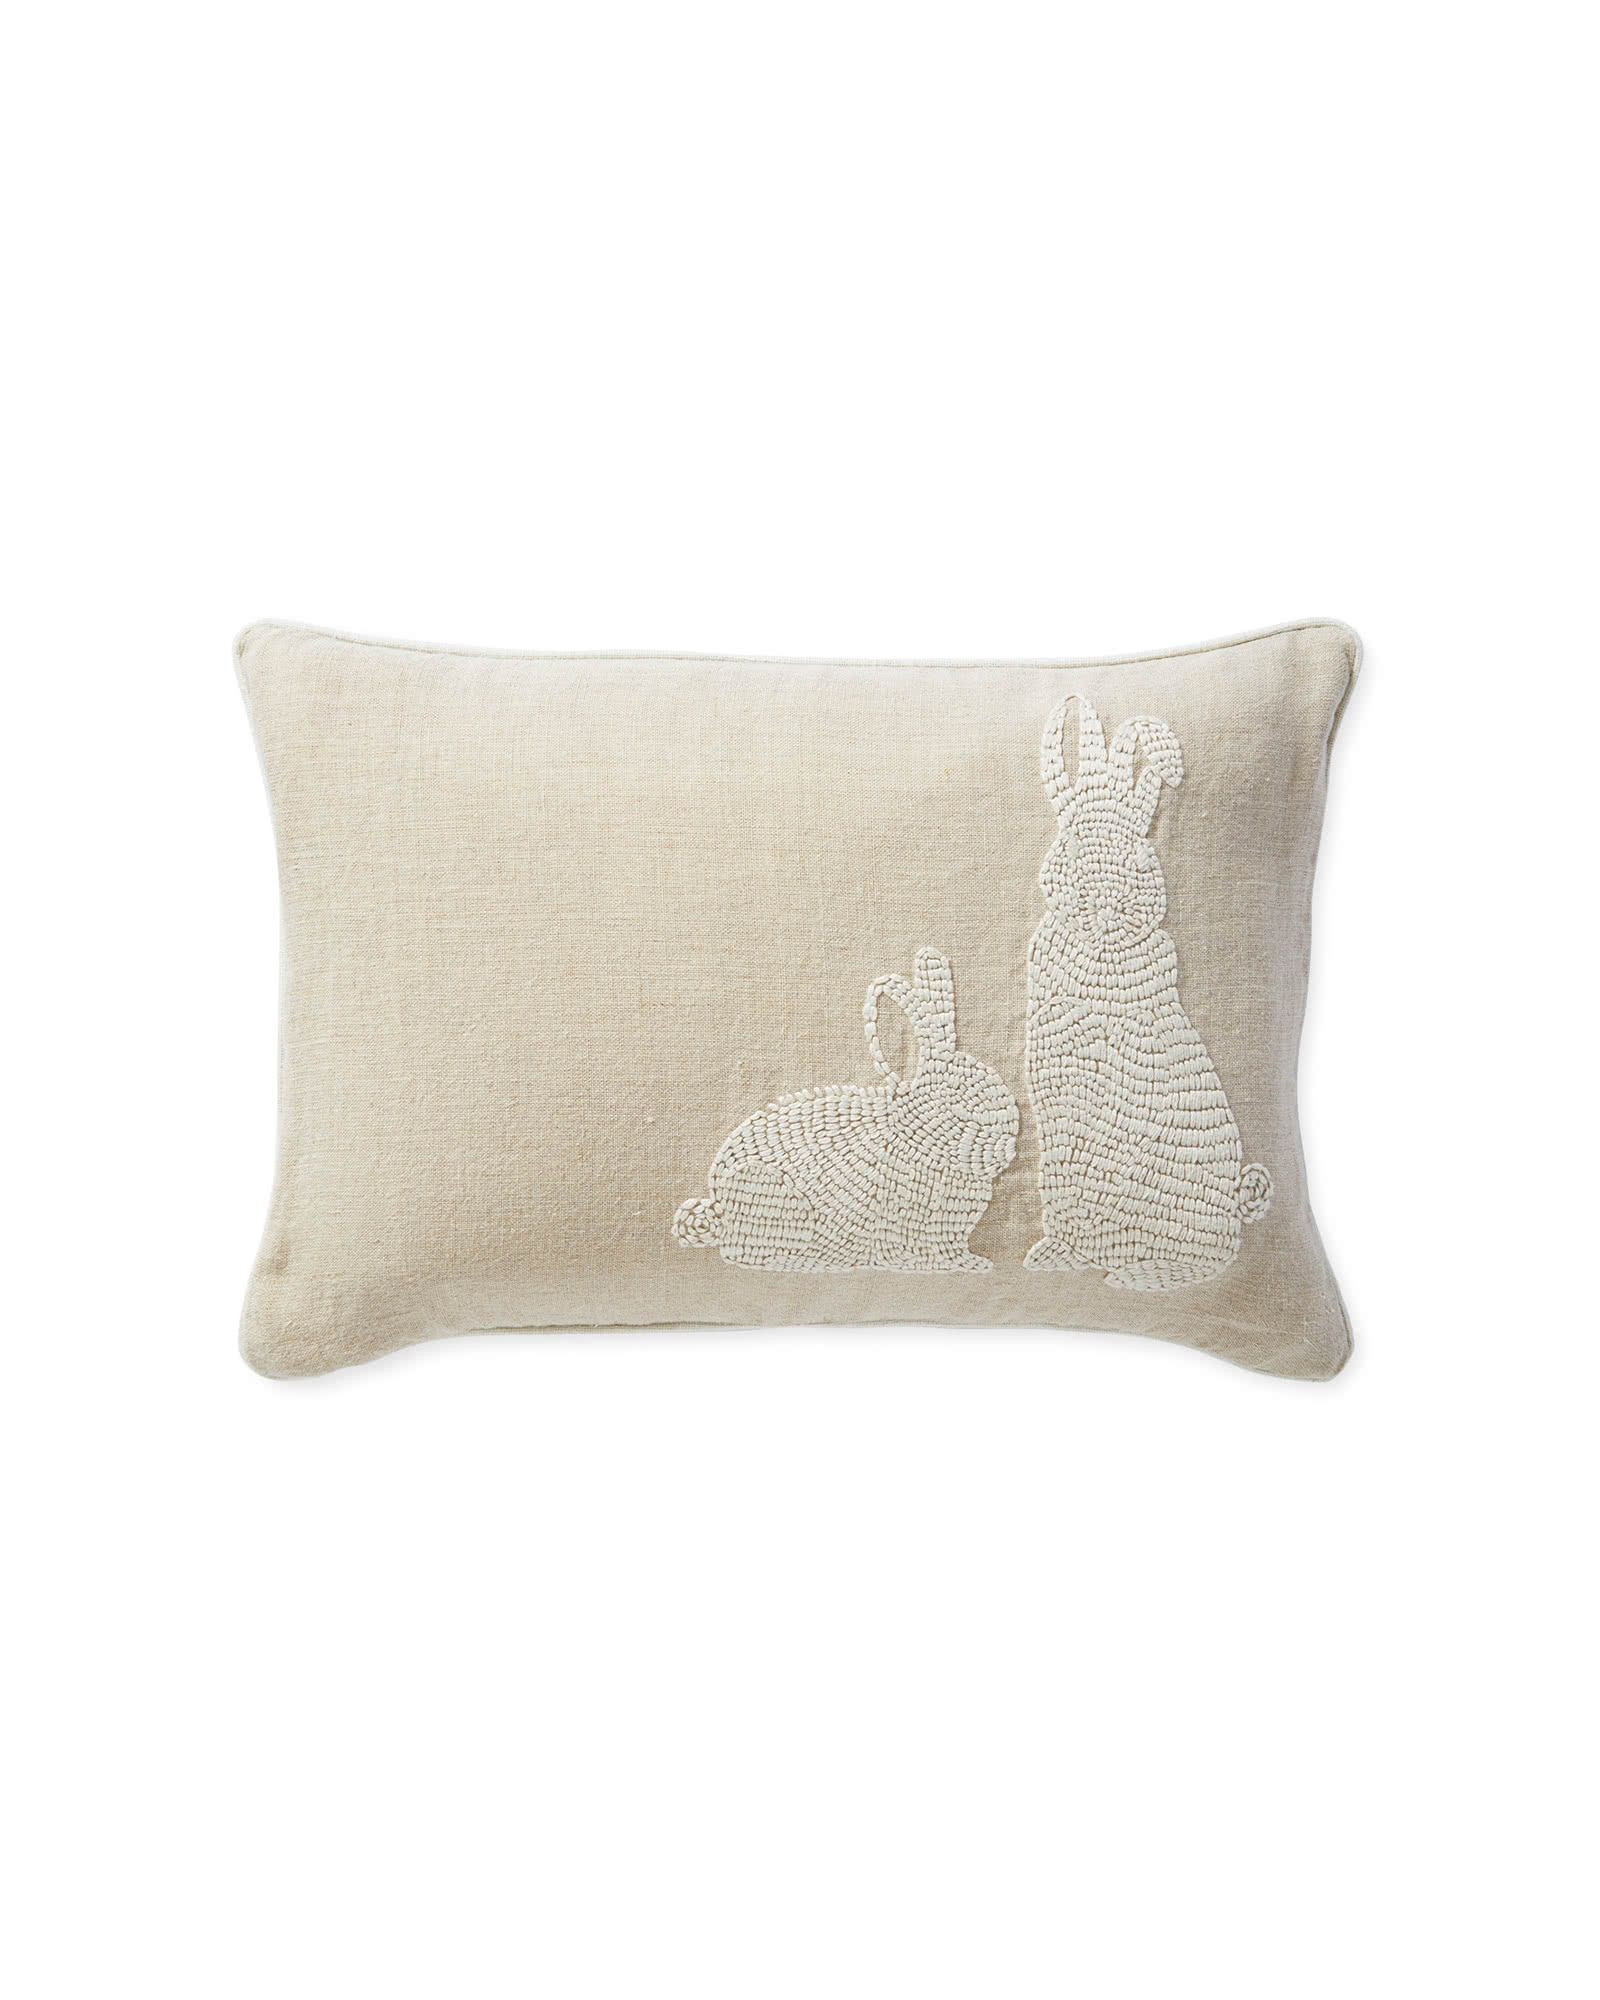 Kit Pillow Cover,